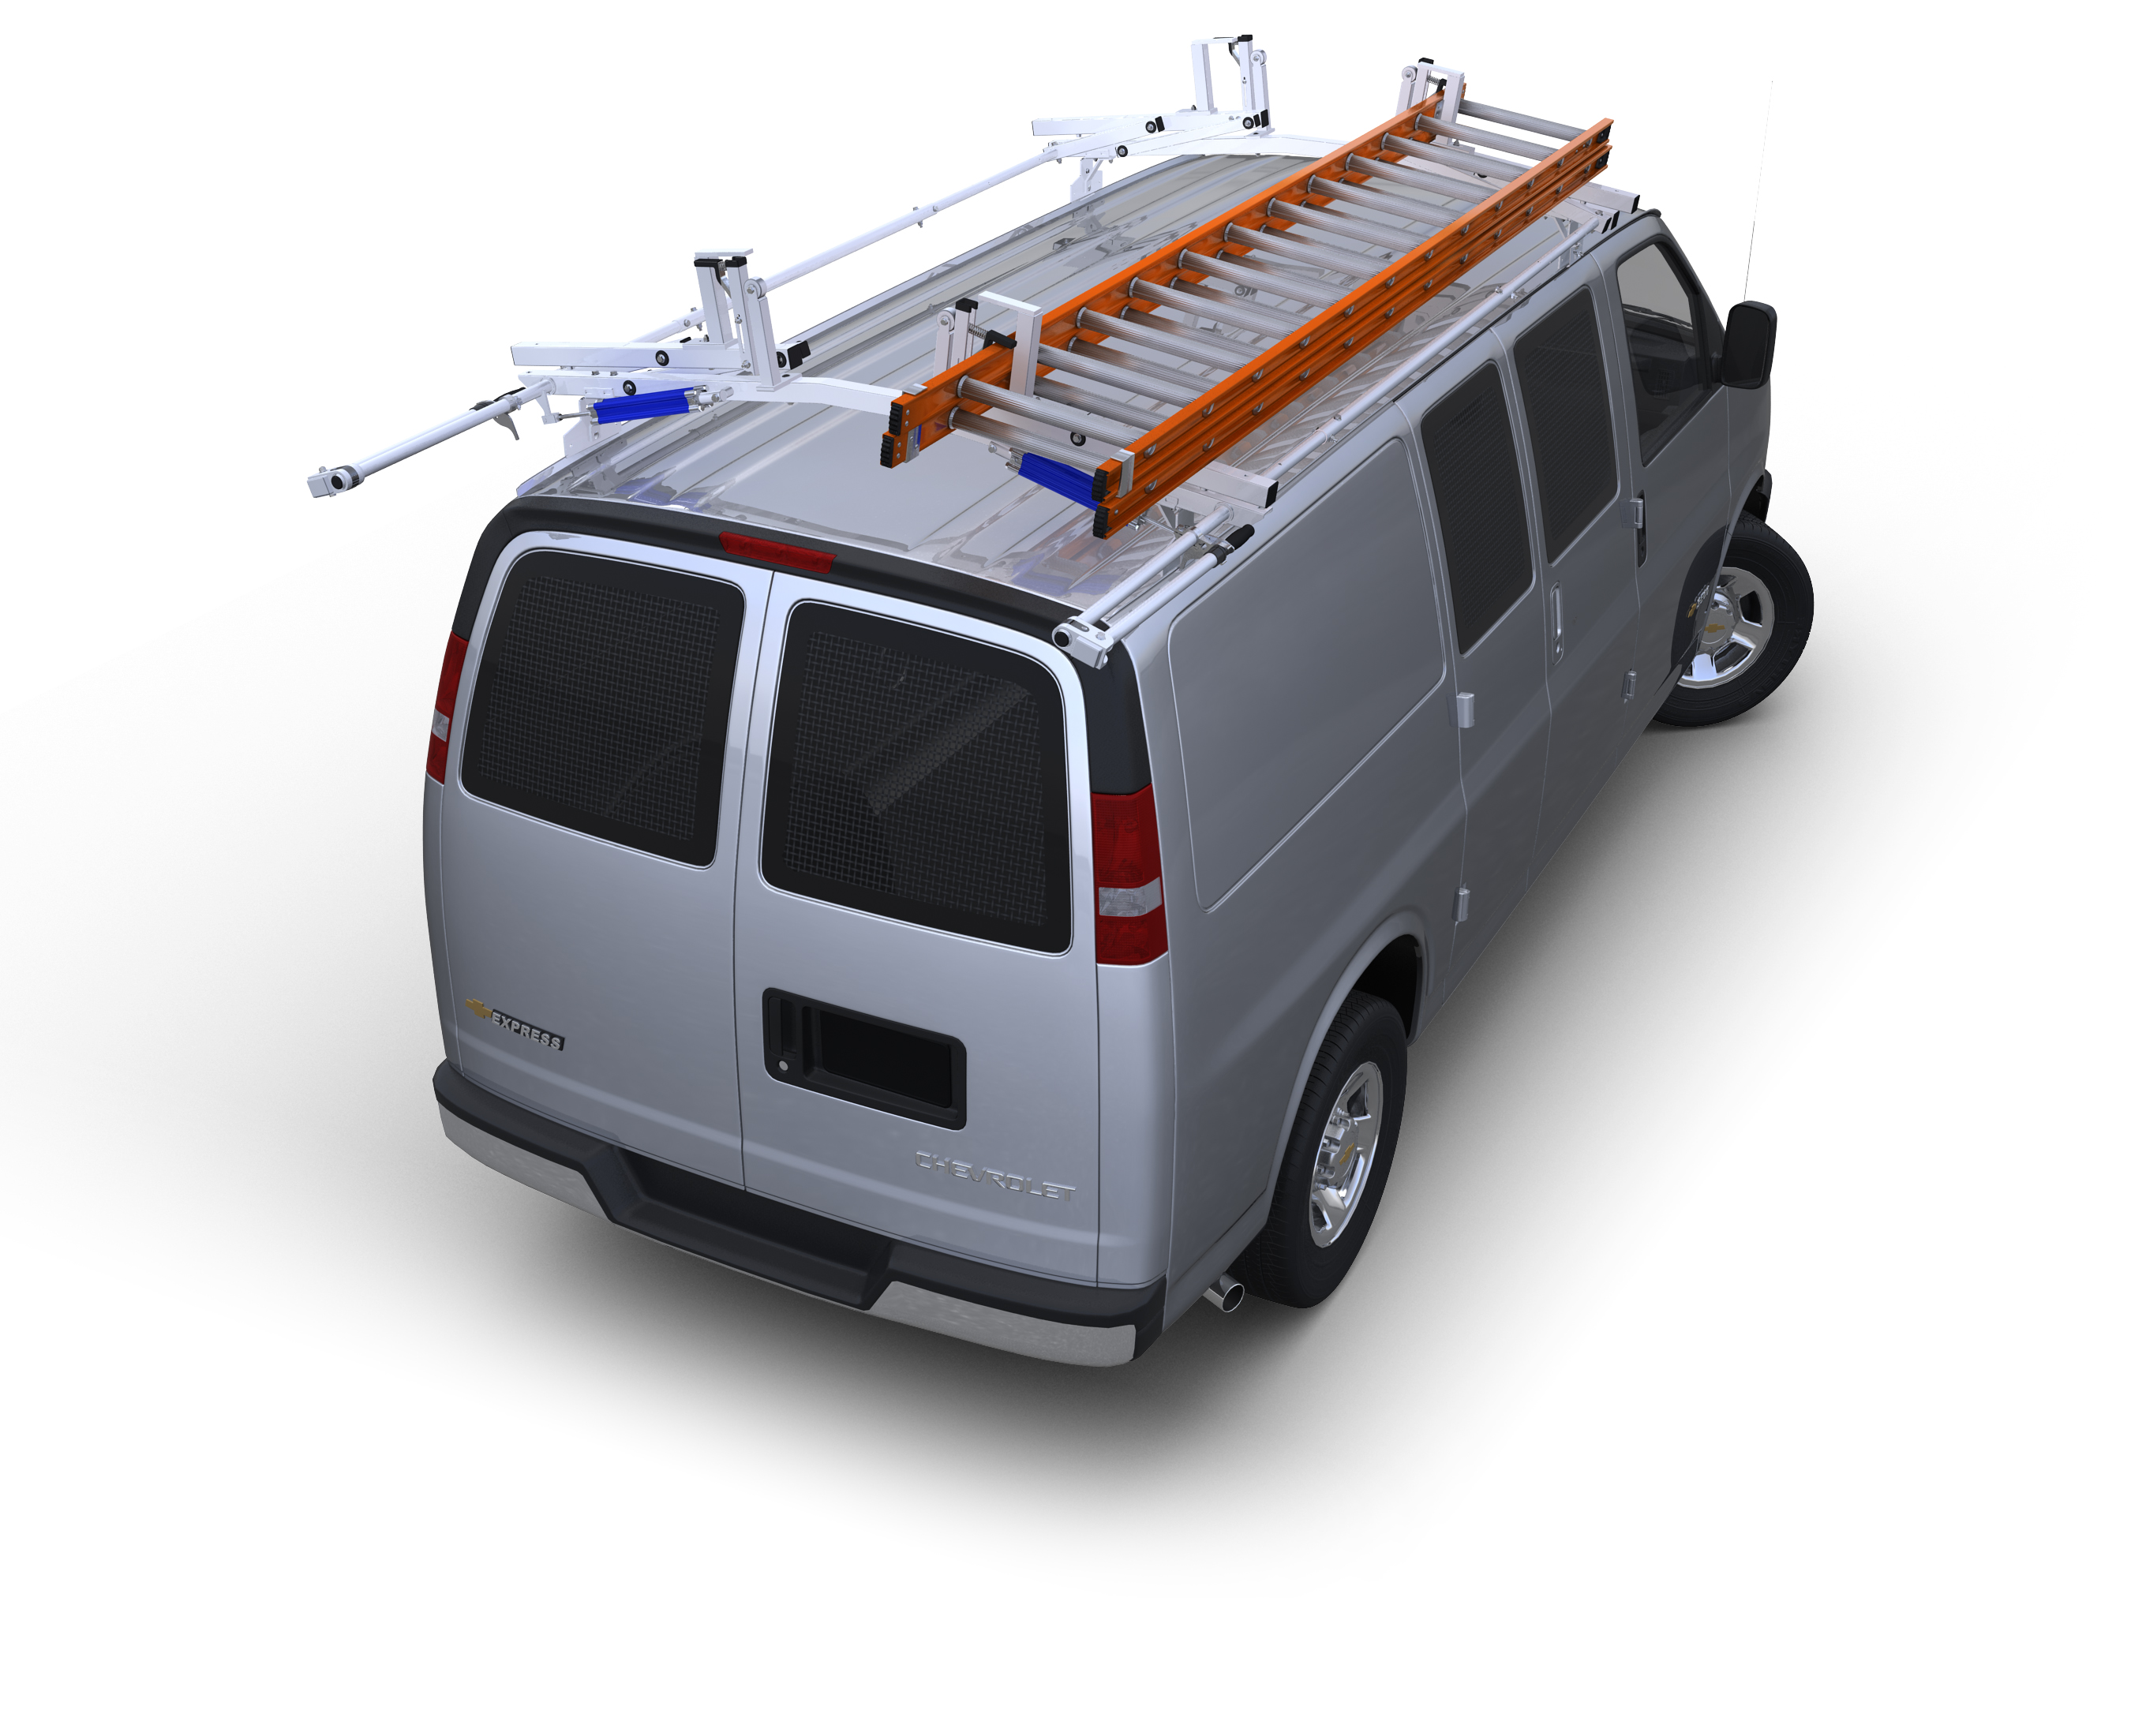 2014 & Newer Transit Connect Long WB Plumbing Van Package, Aluminum Shelving - SAVE $100!